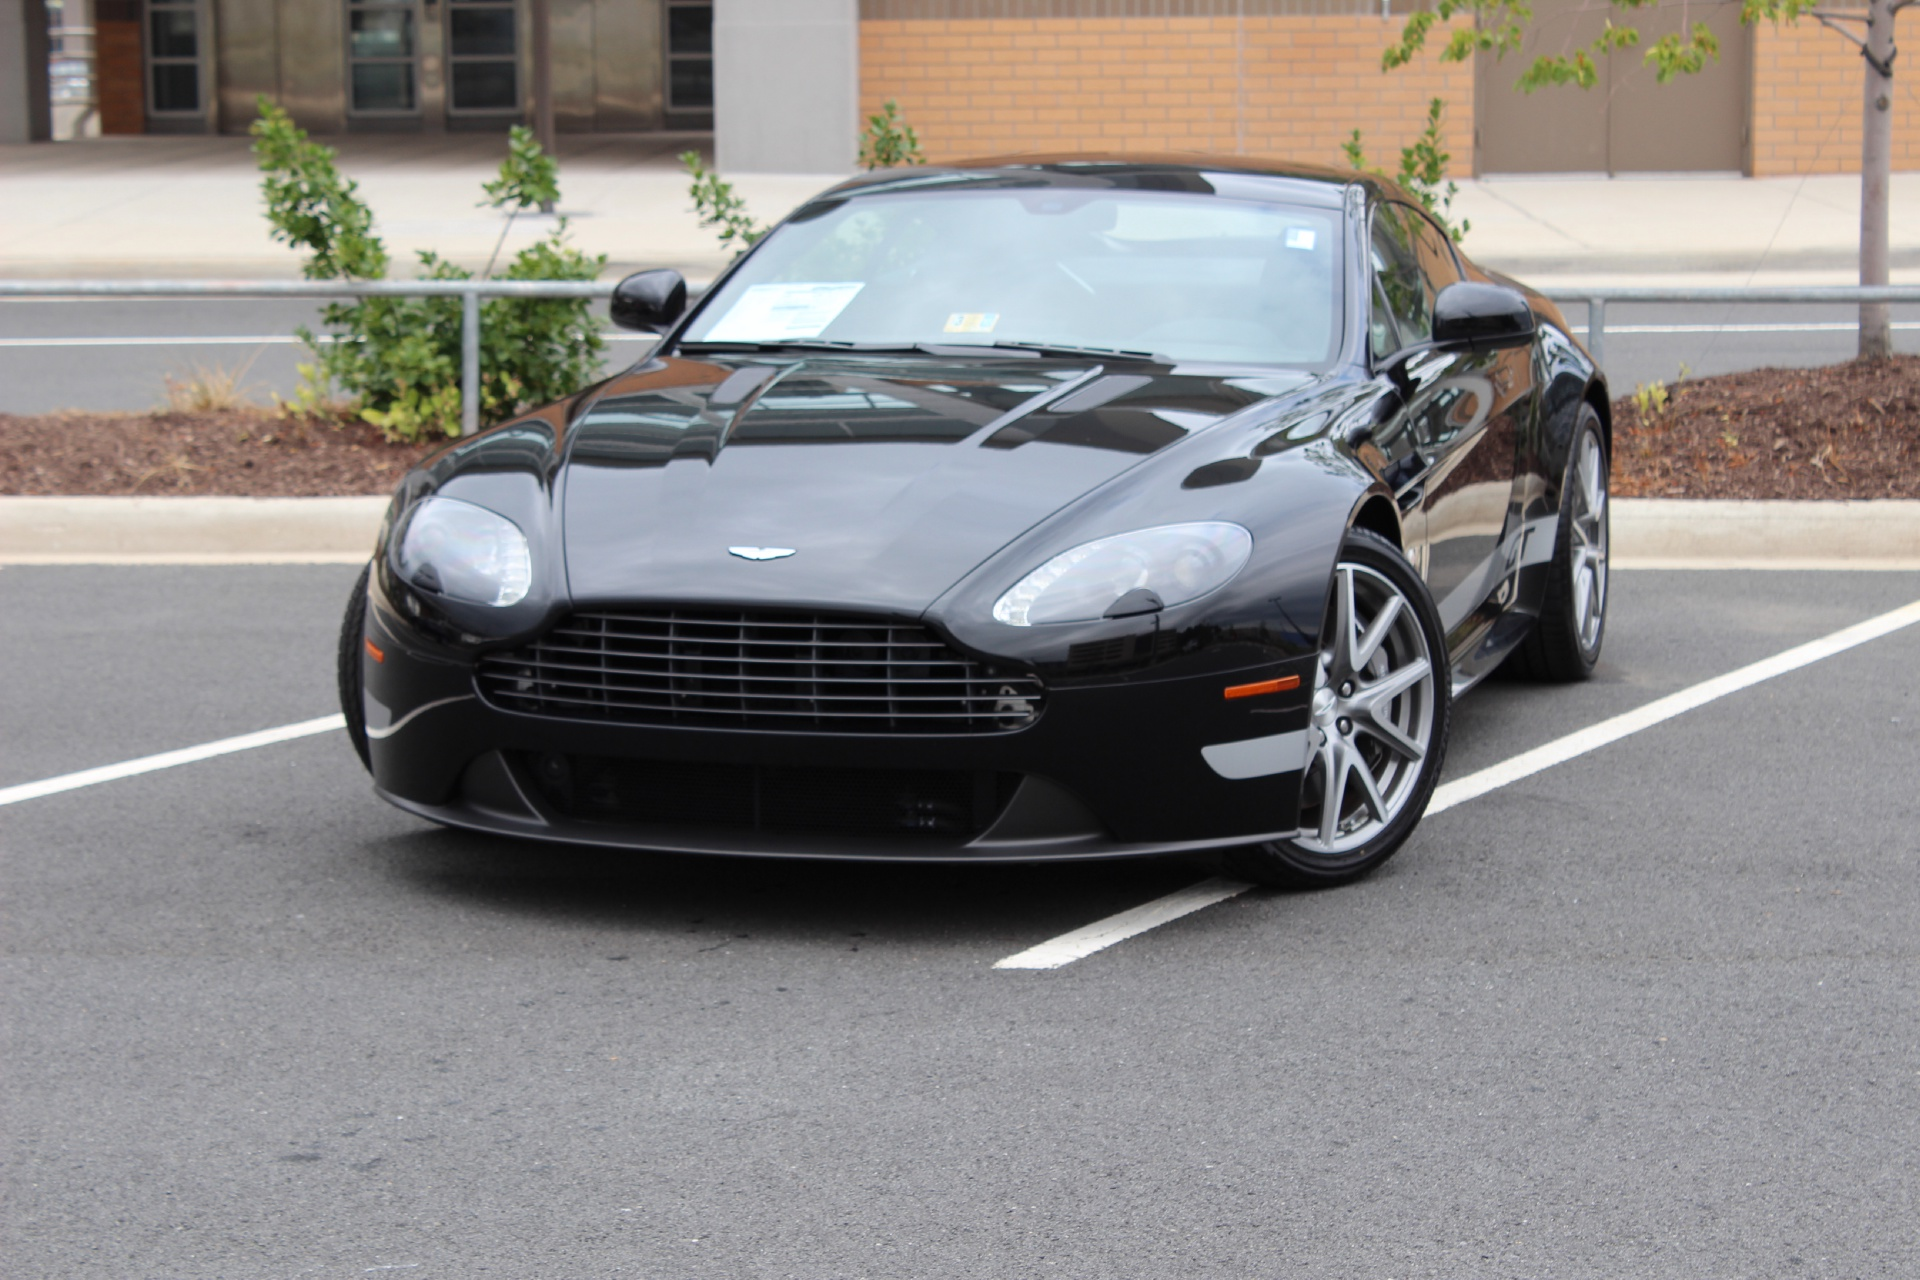 2015 Aston Martin V8 Vantage Gt Coupe Gt Coupe Stock 5c19619 For